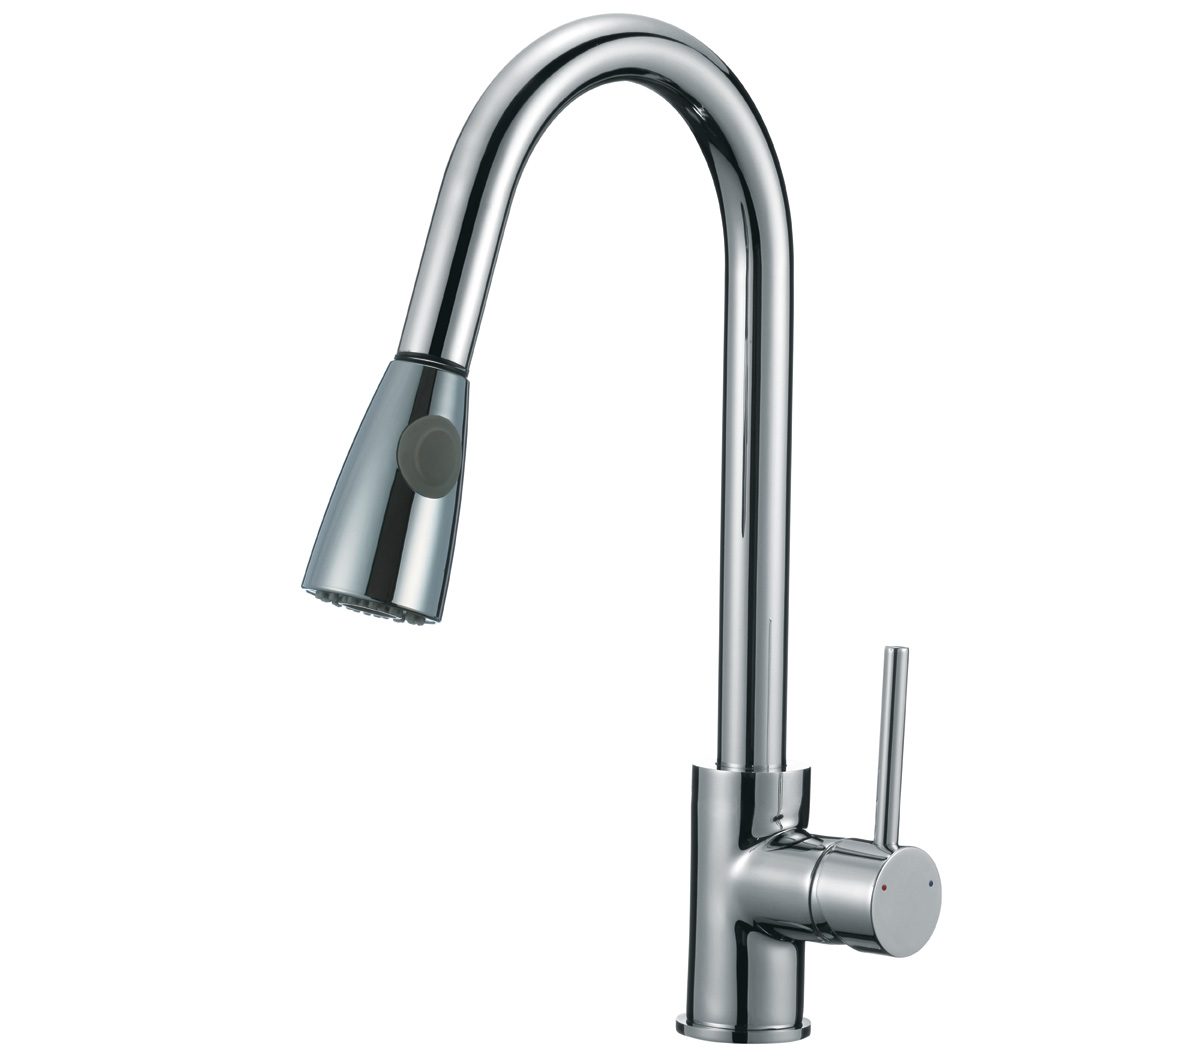 Kitchen Faucet Extension Hienduretm Fold Kitchen Faucet Extension And Cold